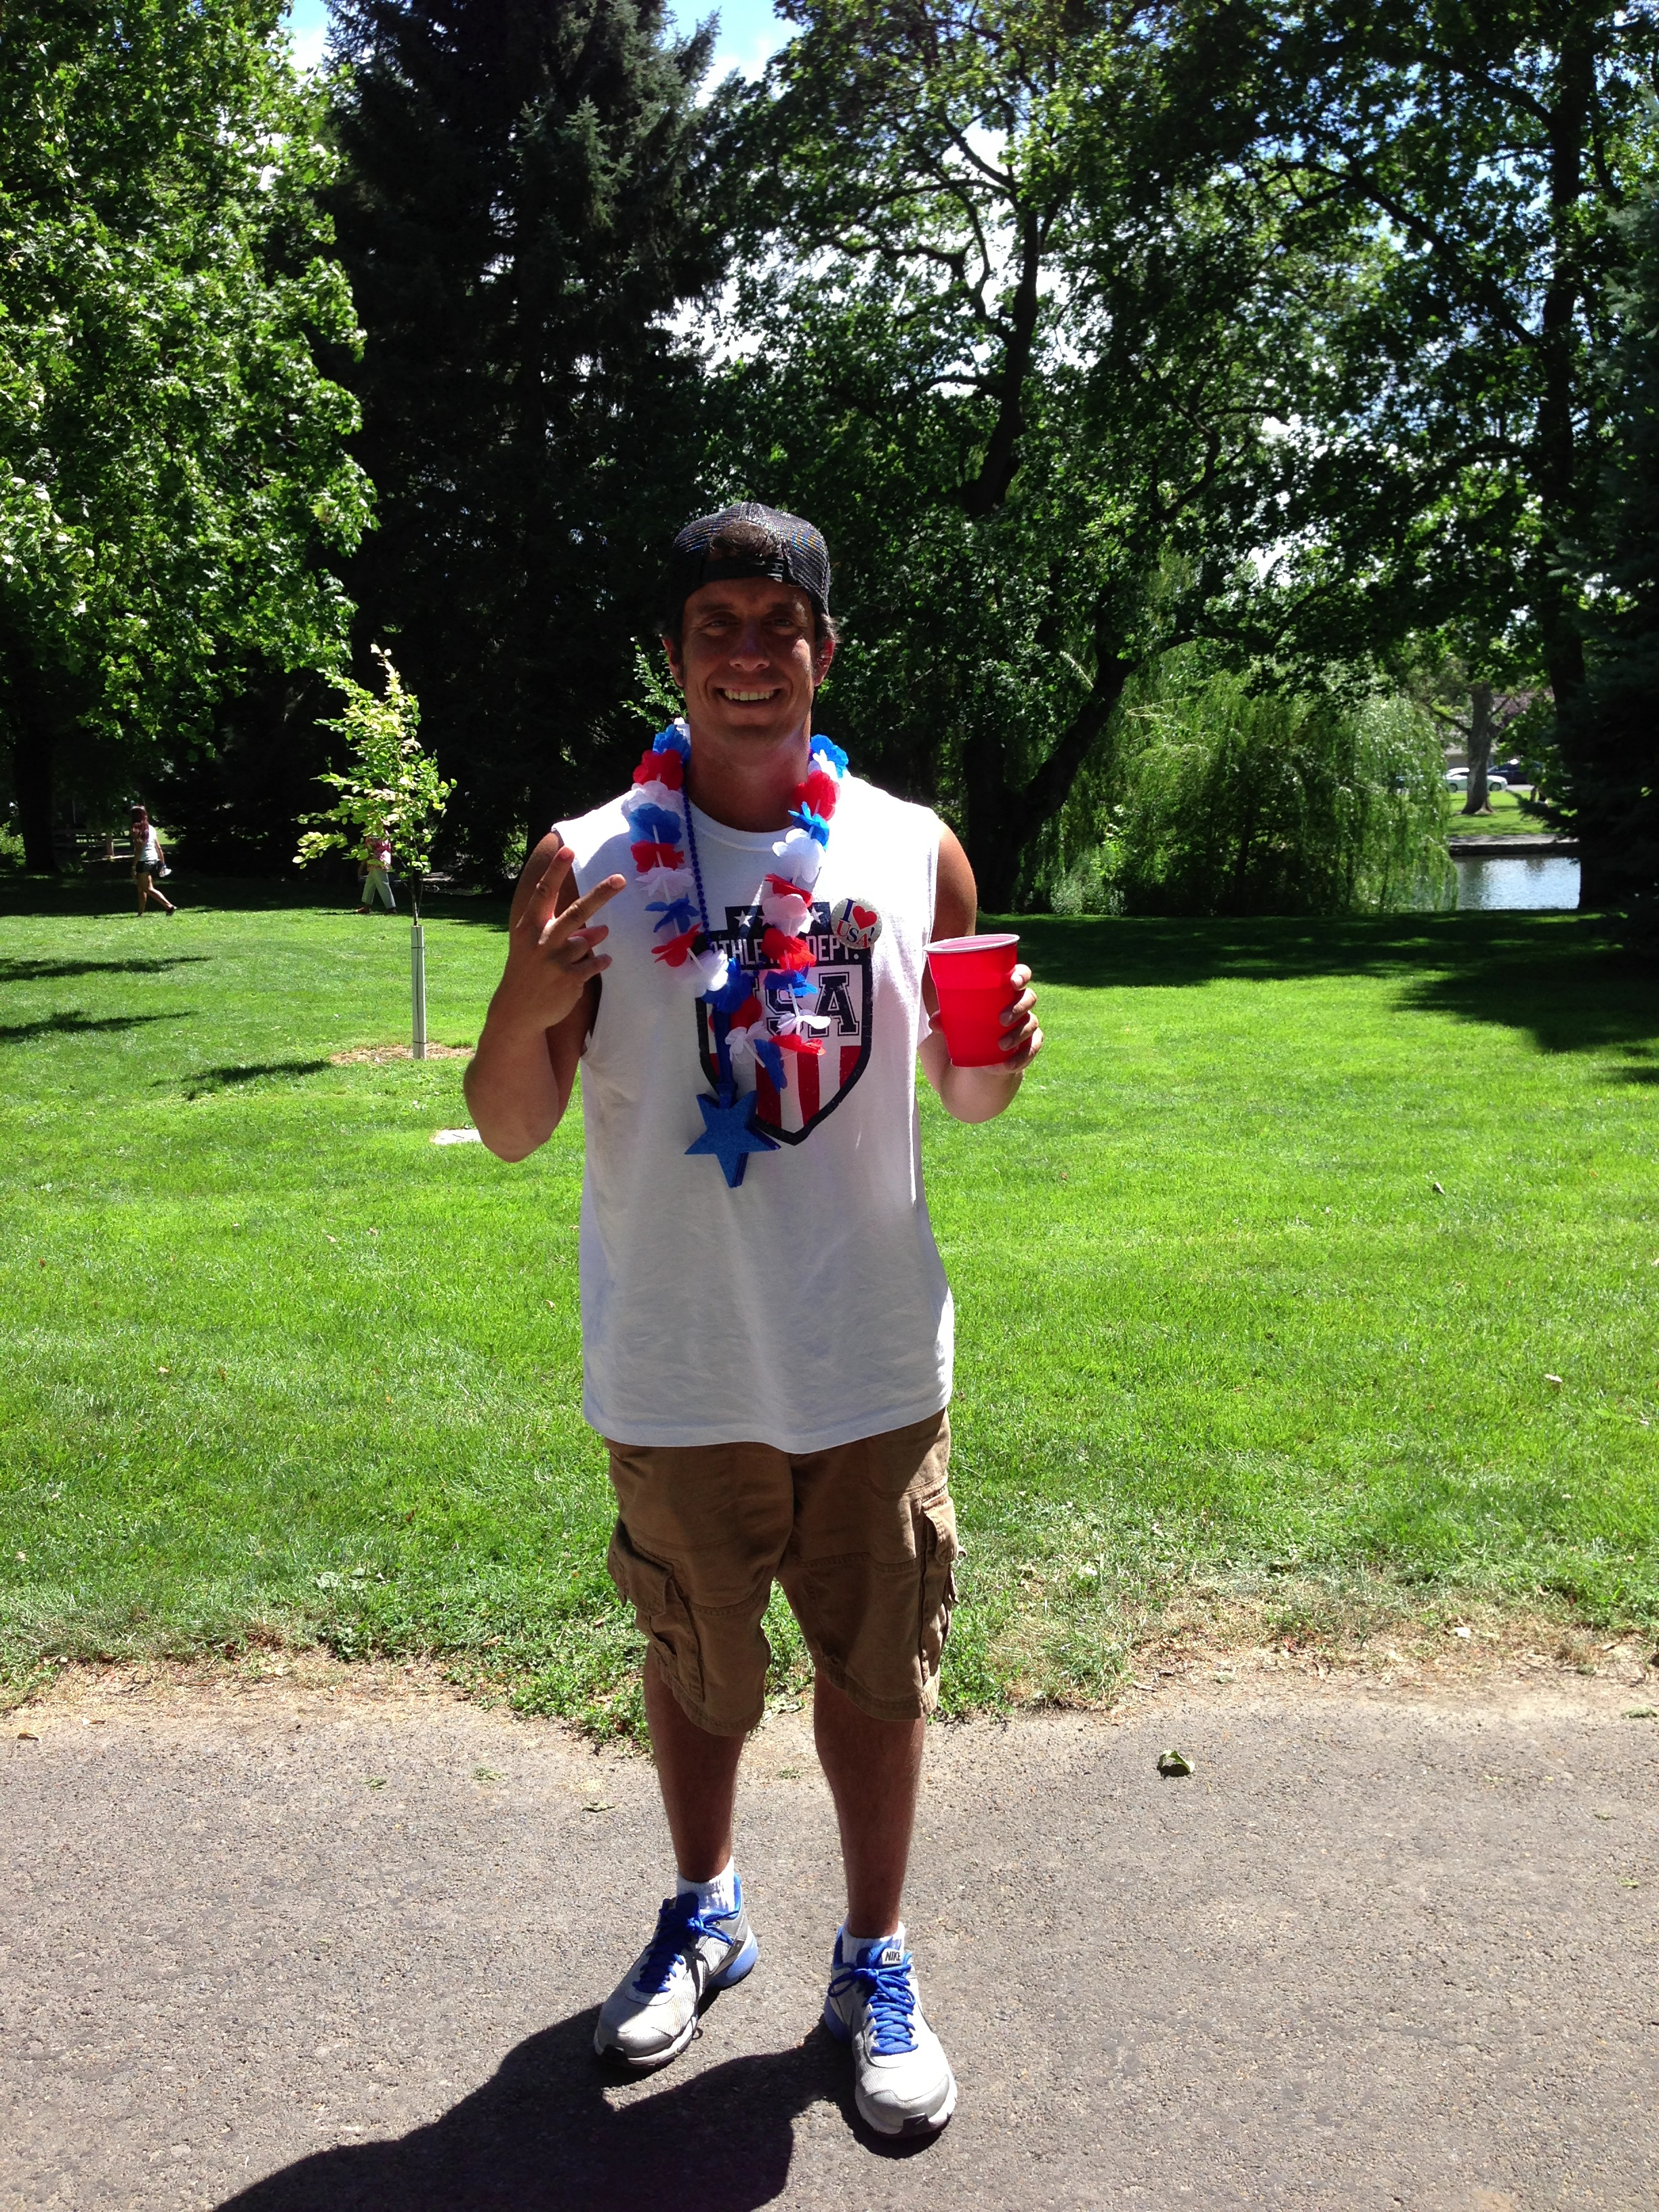 Me in Walla Walla at our family Fourth of July celebration in 2013.